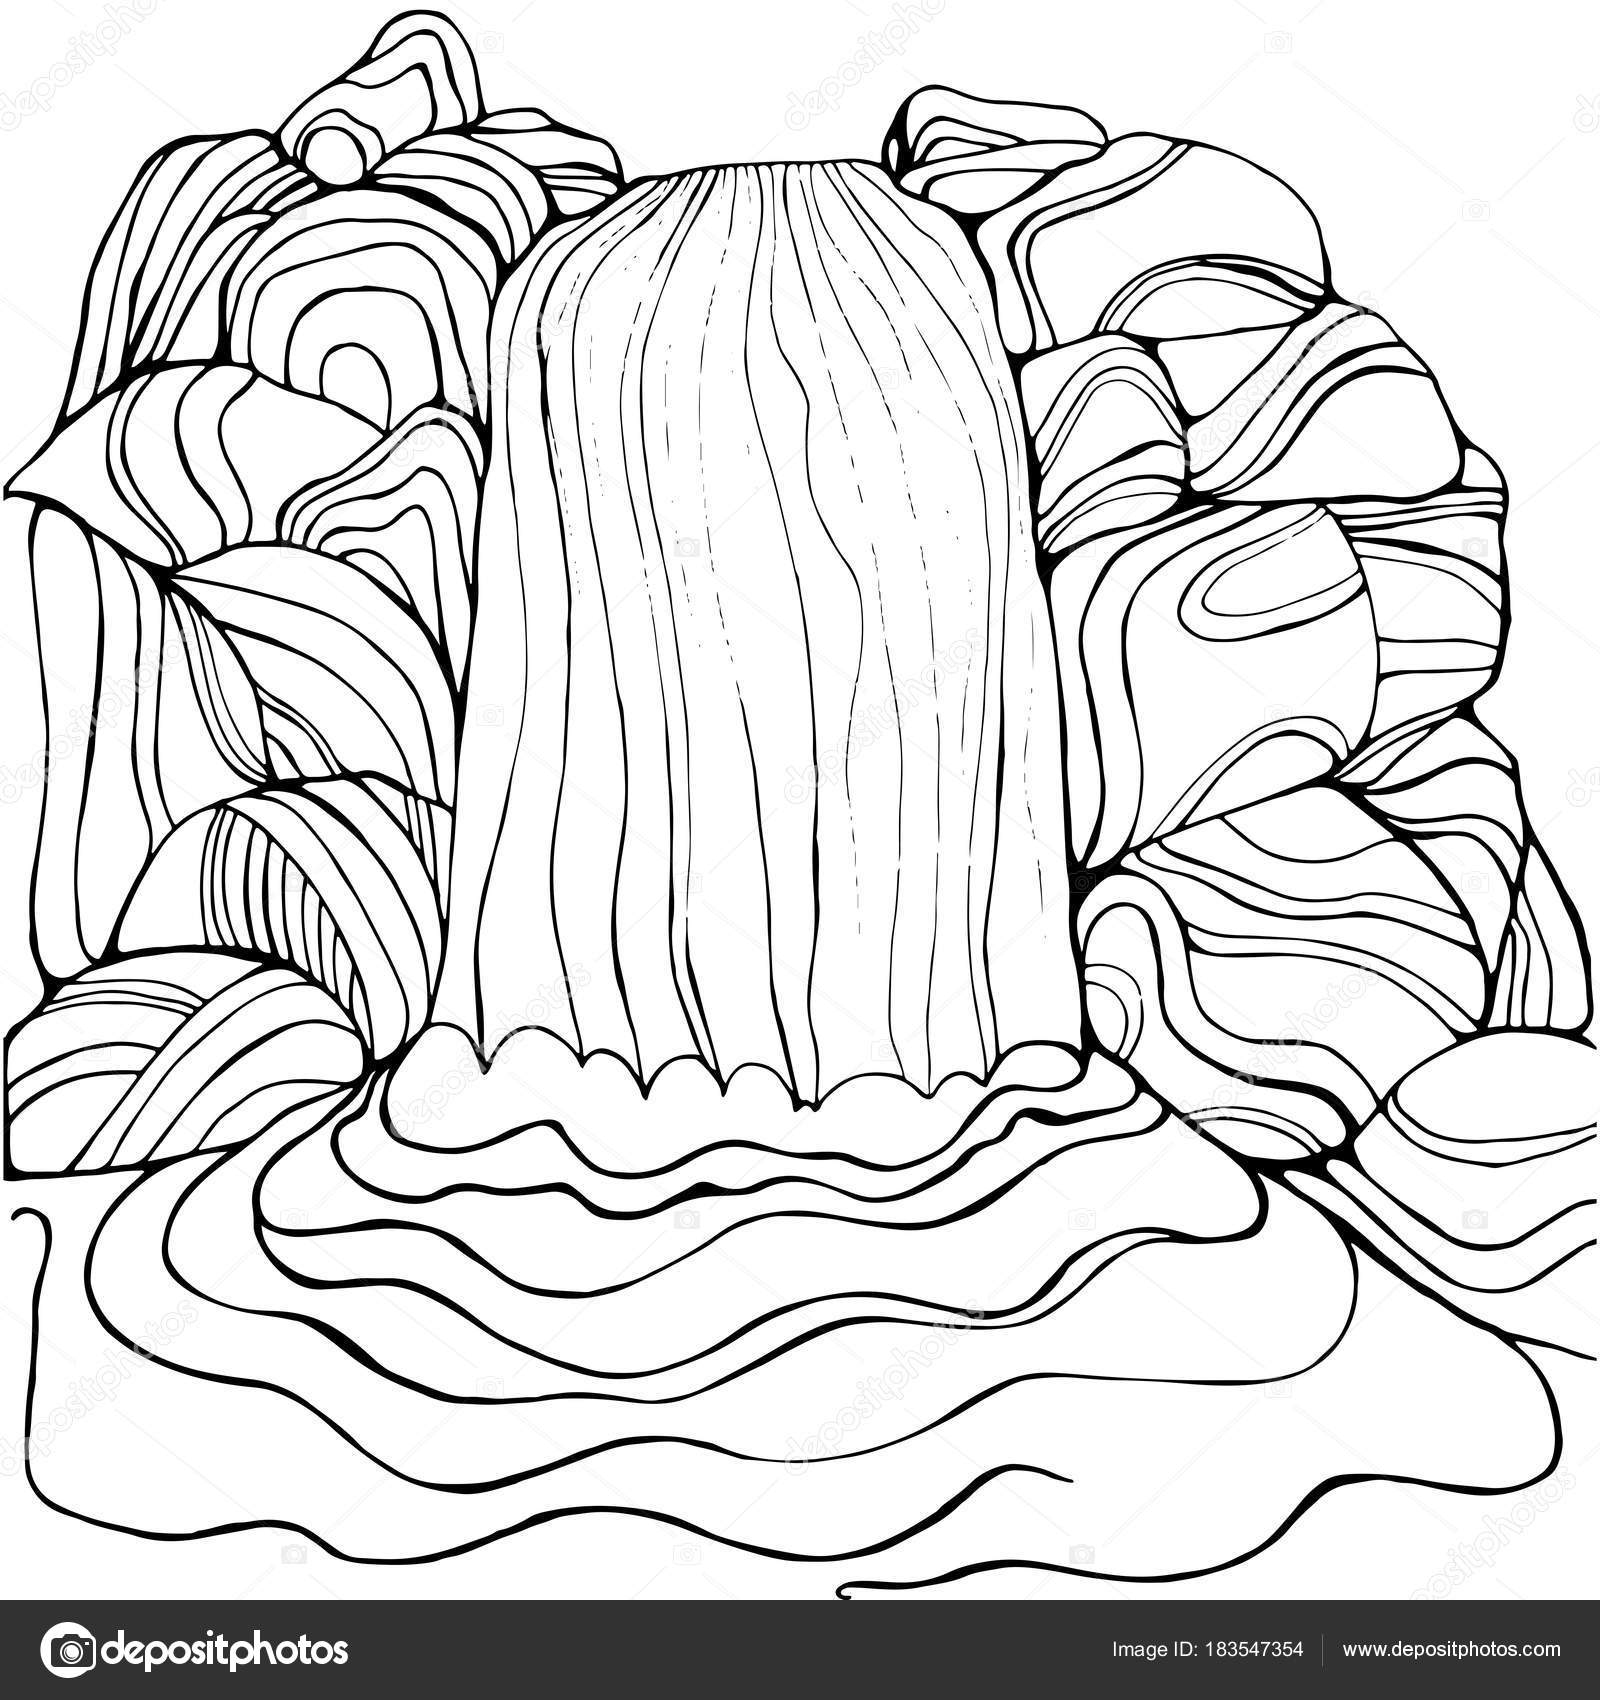 1600x1700 Waterfall Coloring Page For Children And Adults. Stock Vector